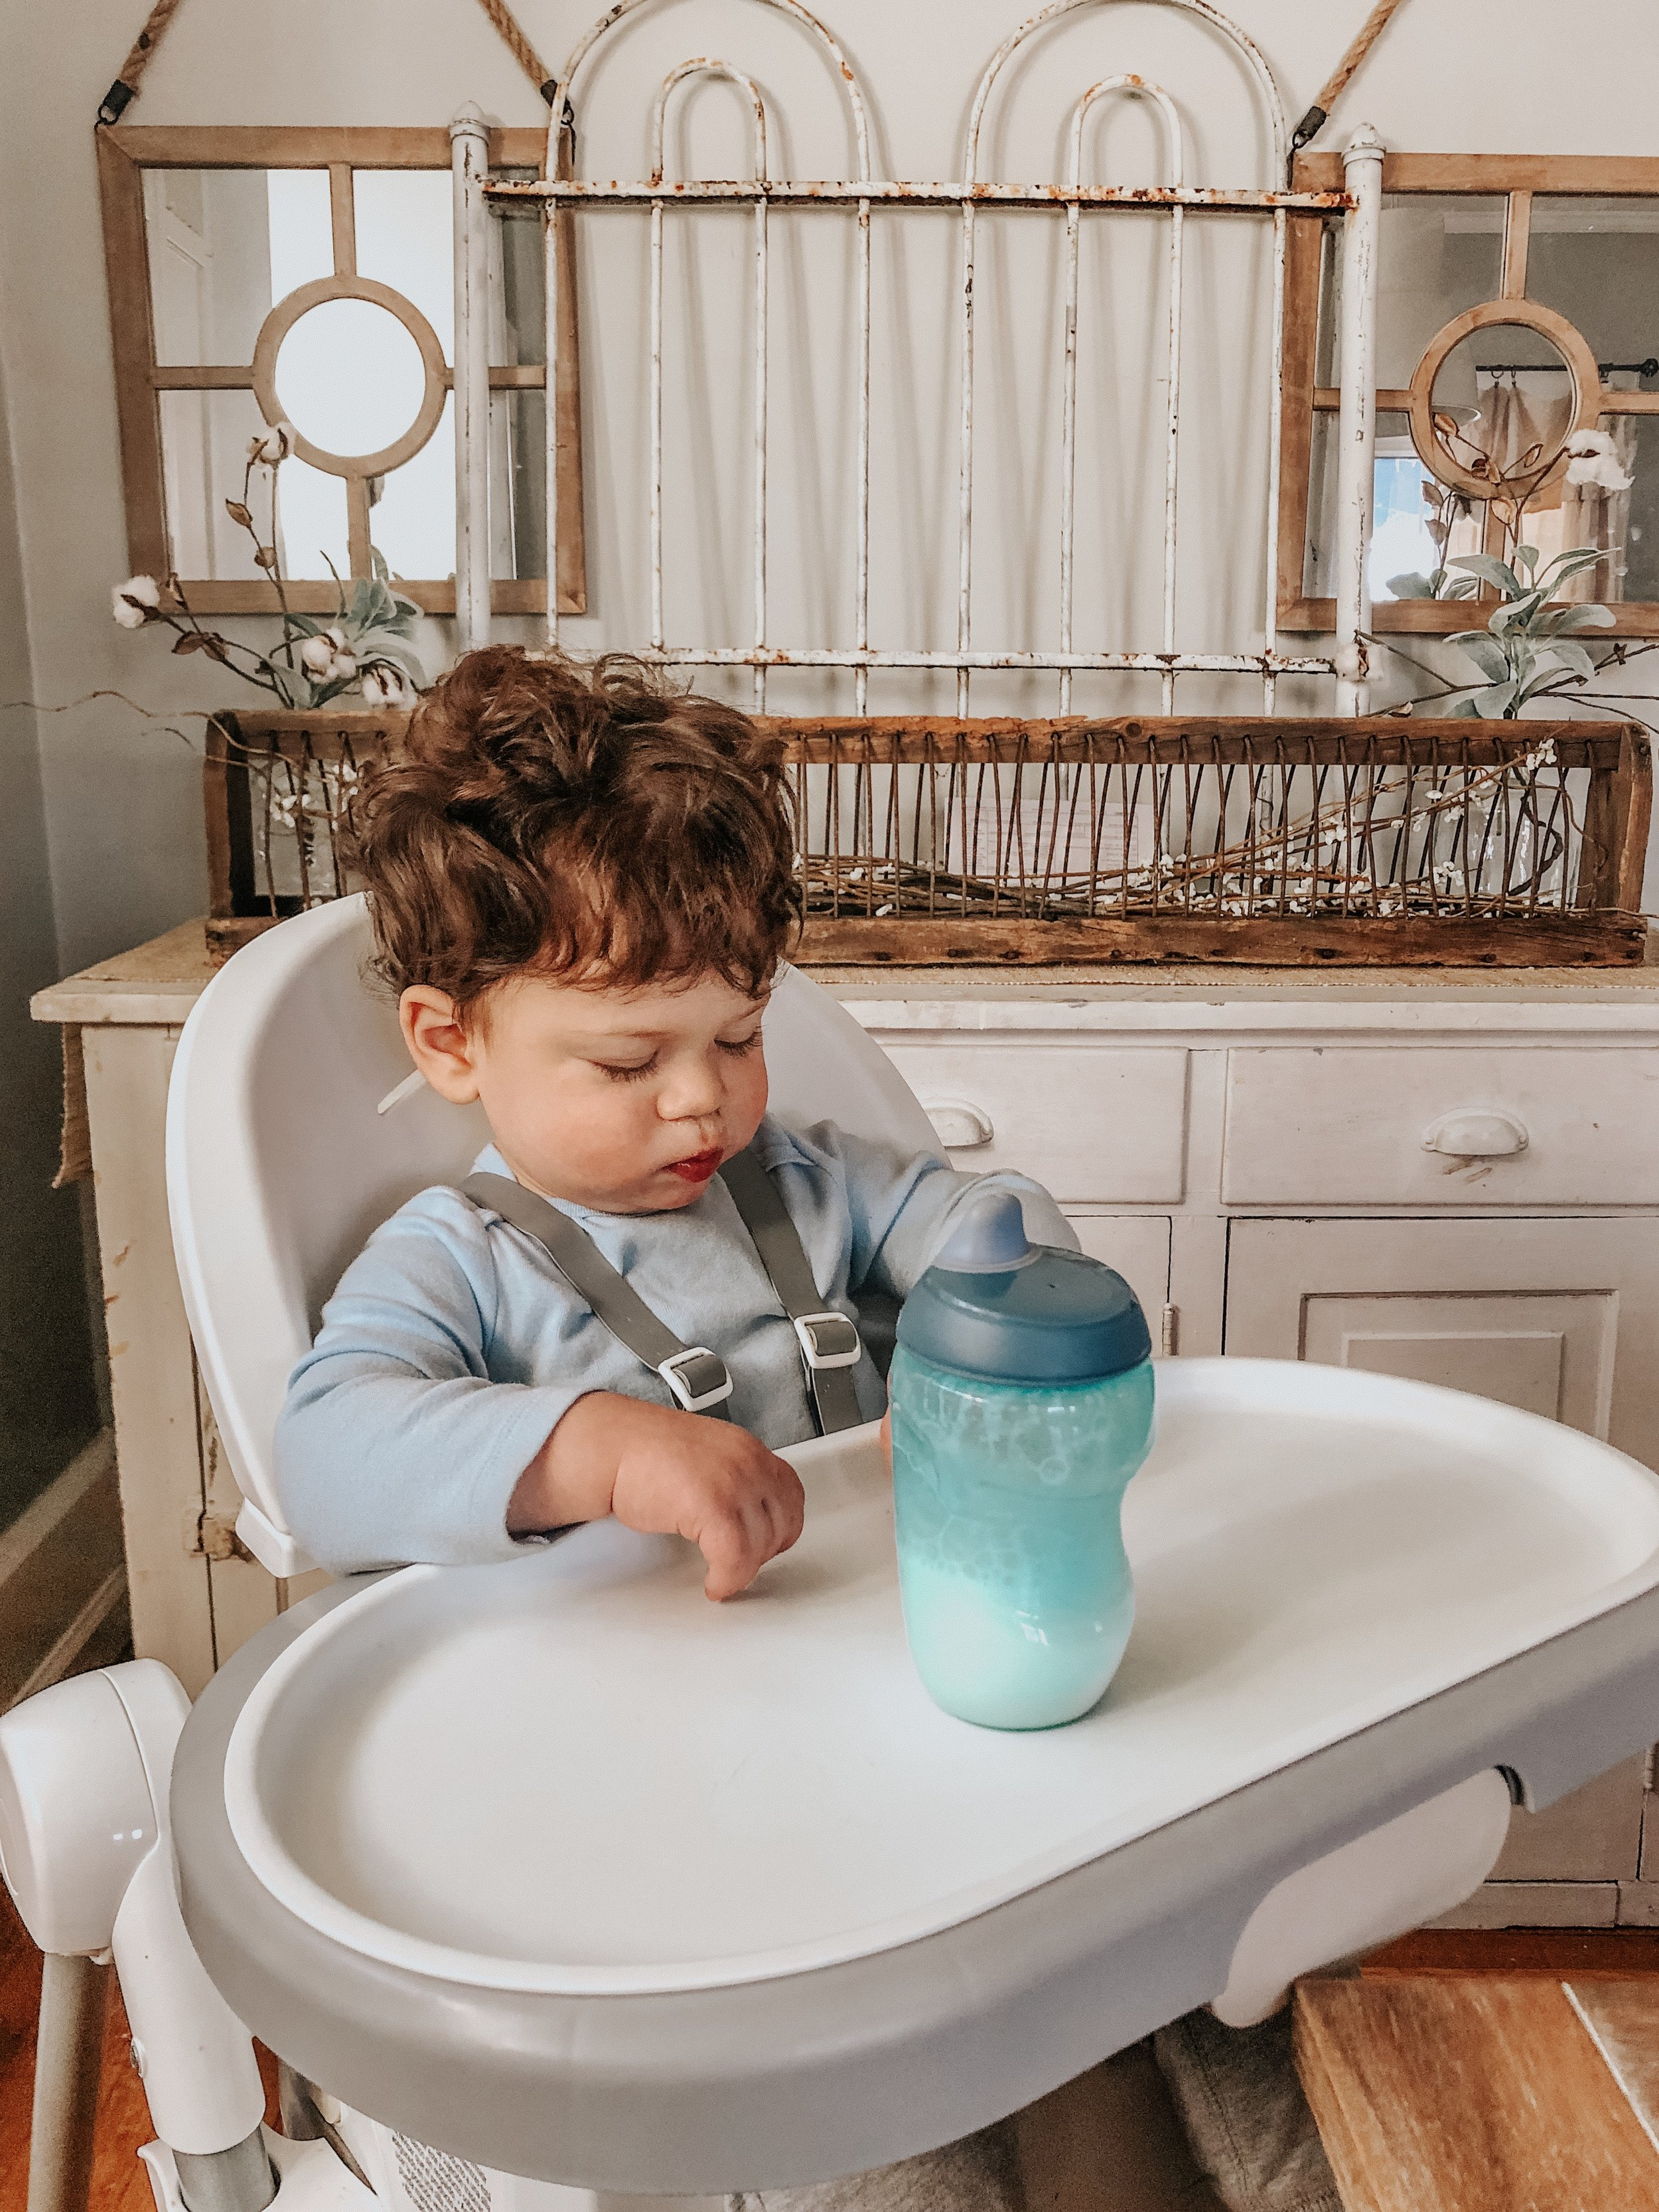 Our favorite sippy cups